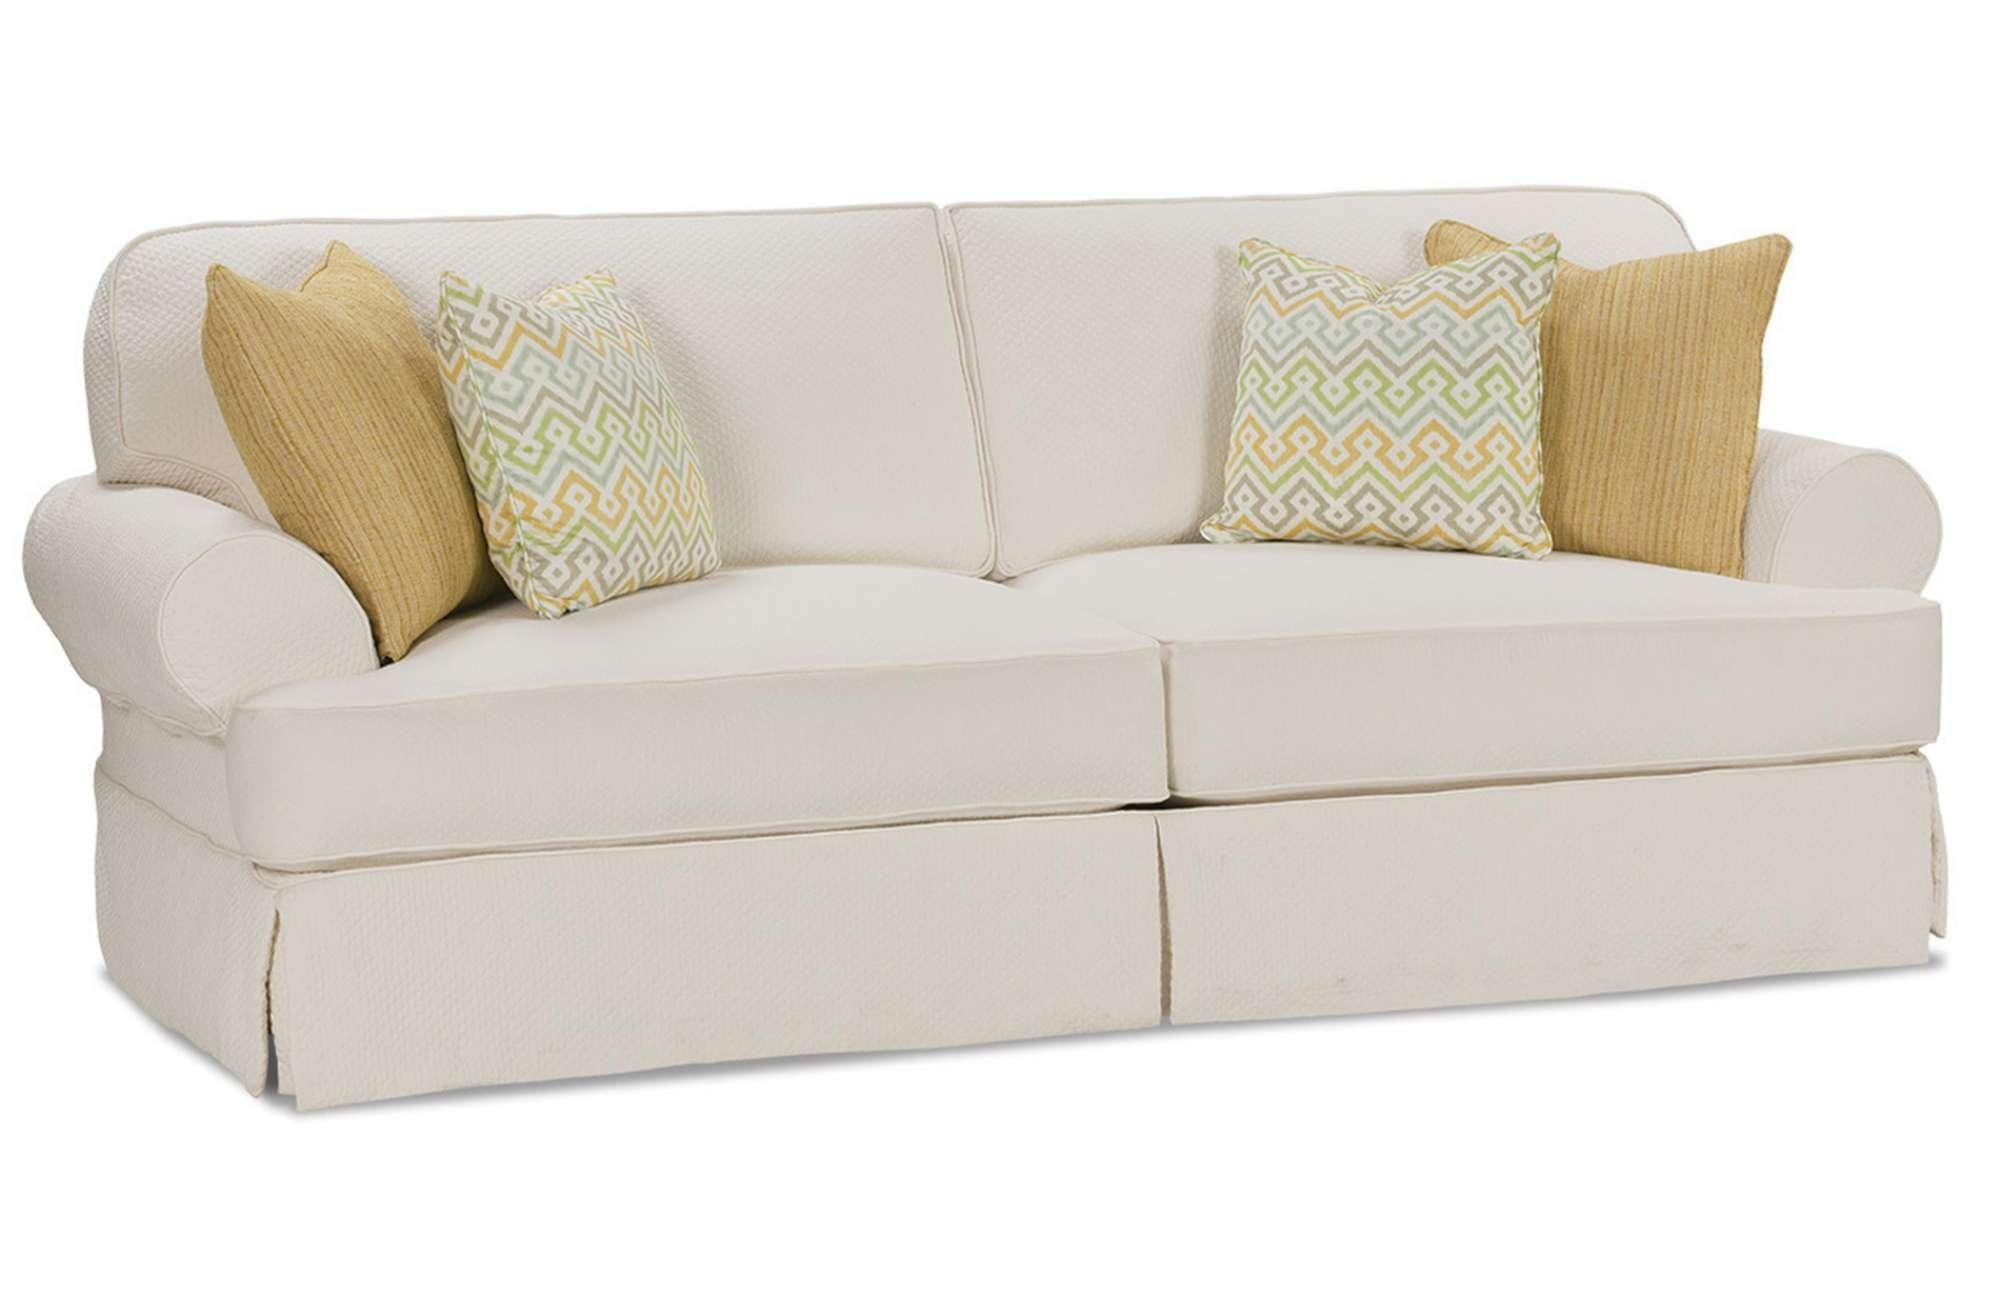 Chair & Sofa: Usual Slipcovered Sofas For Classic Sofa Idea Inside Sofa With Washable Covers (Image 2 of 20)